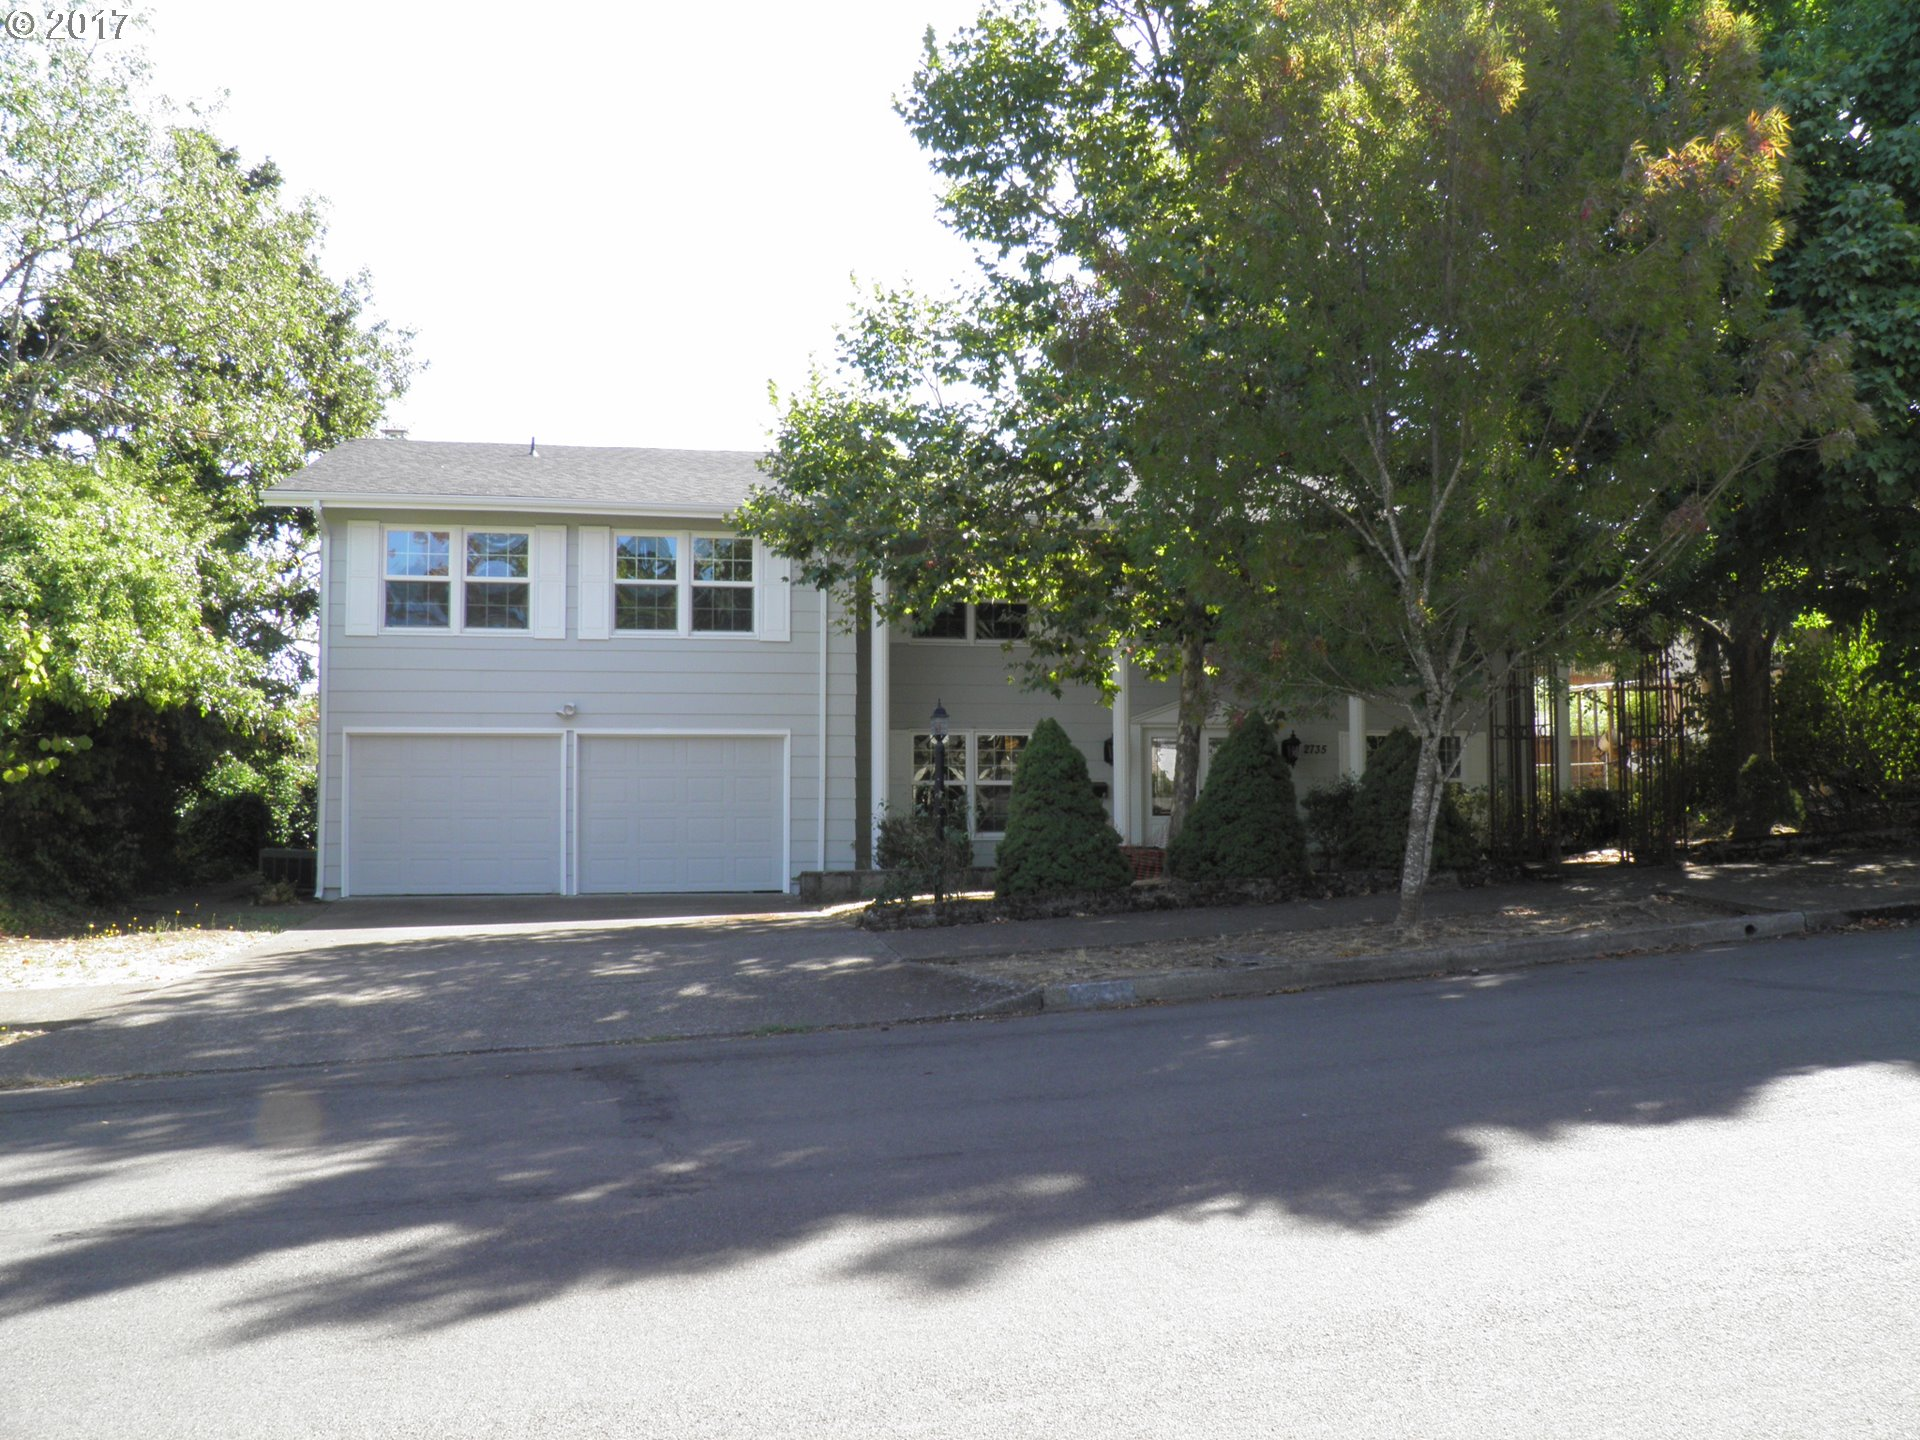 3162 sq. ft 6 bedrooms 3 bathrooms  House For Sale,Eugene, OR